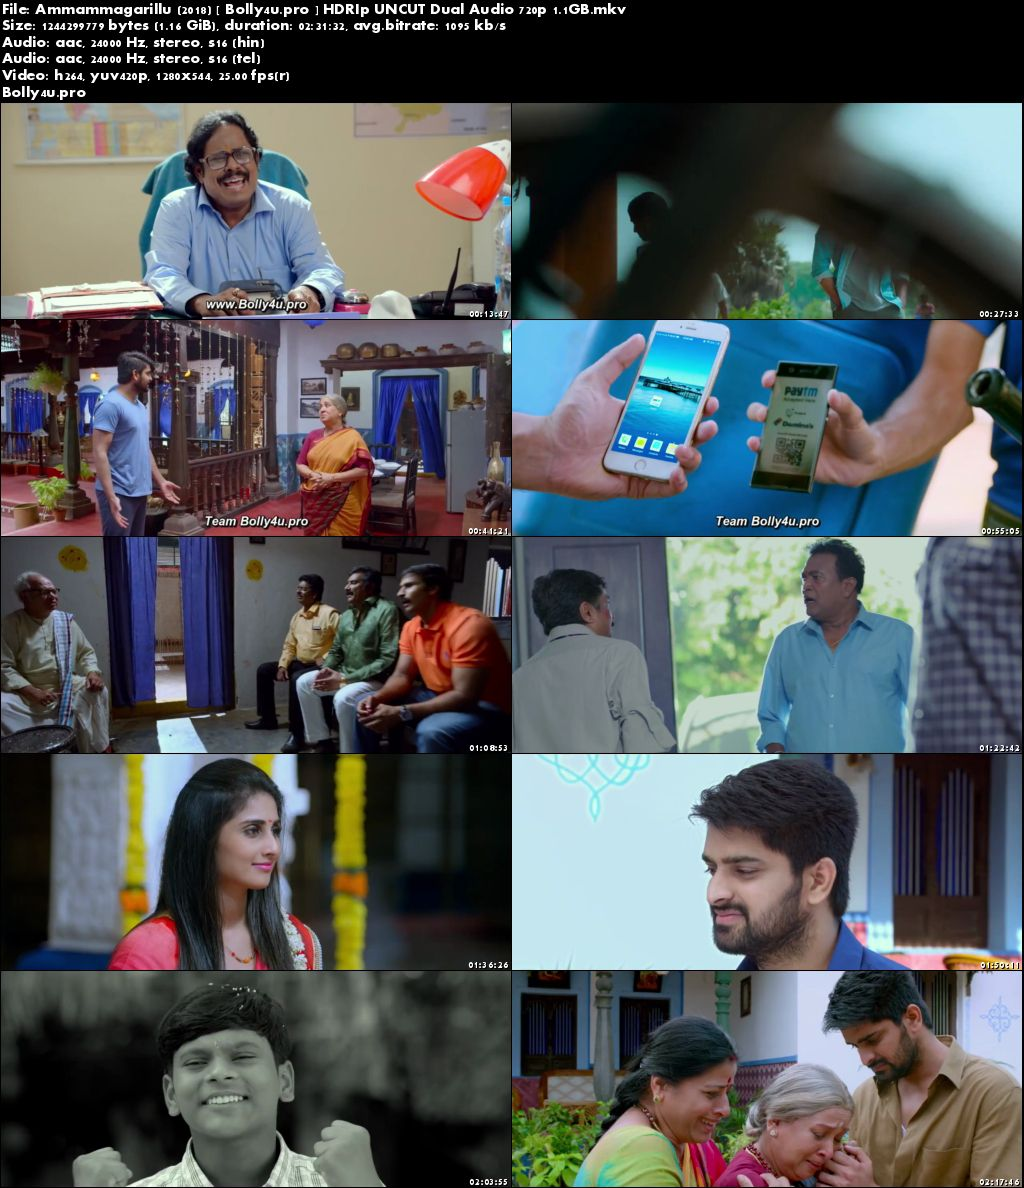 e581e4bab Ammammagarillu 2018 HDRip UNCUT Hindi Dual Audio 720p - Movies Wood